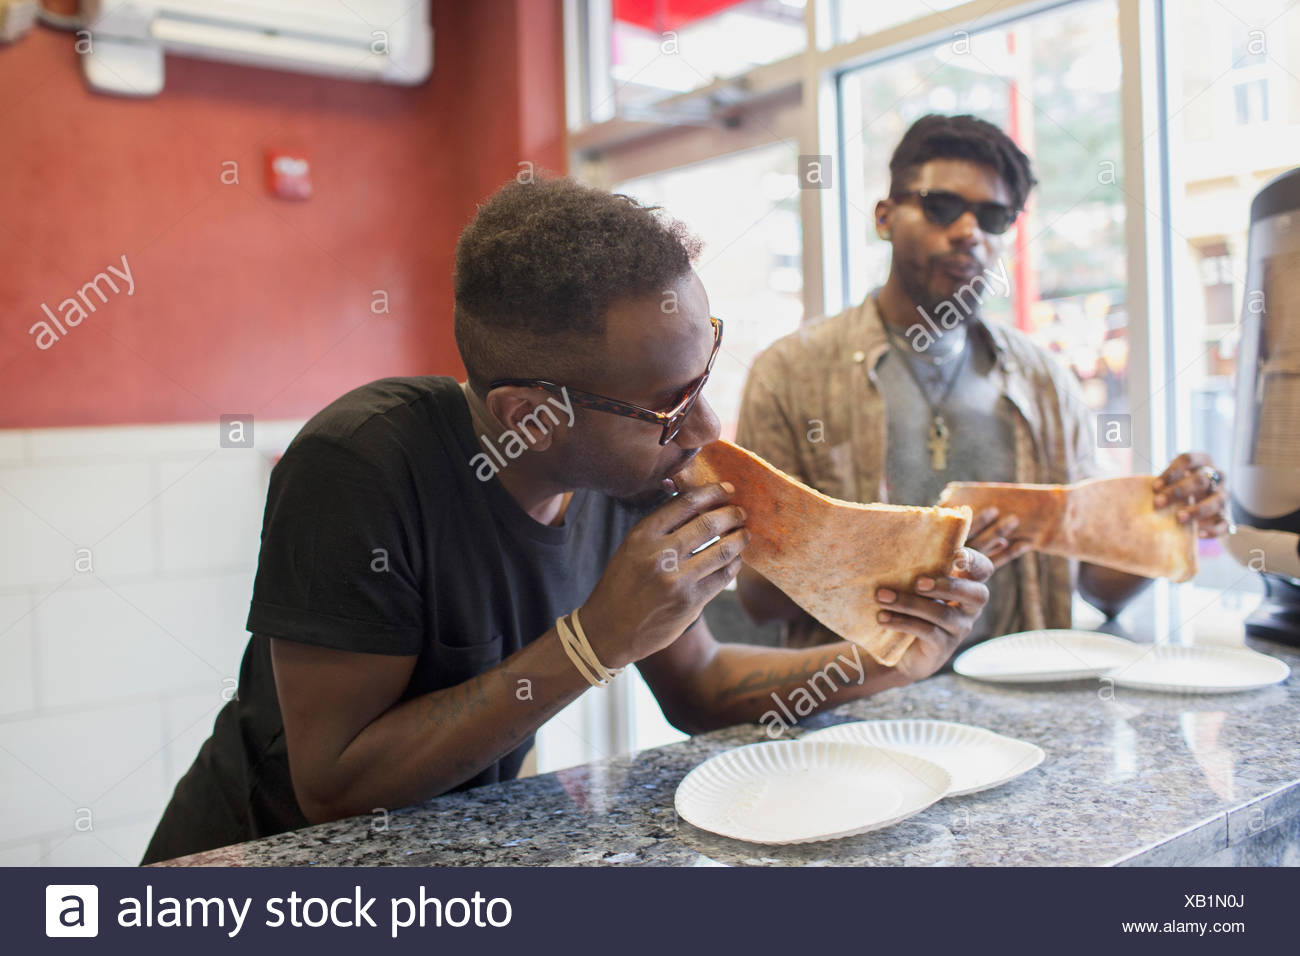 Two young men eating pizza. - Stock Image